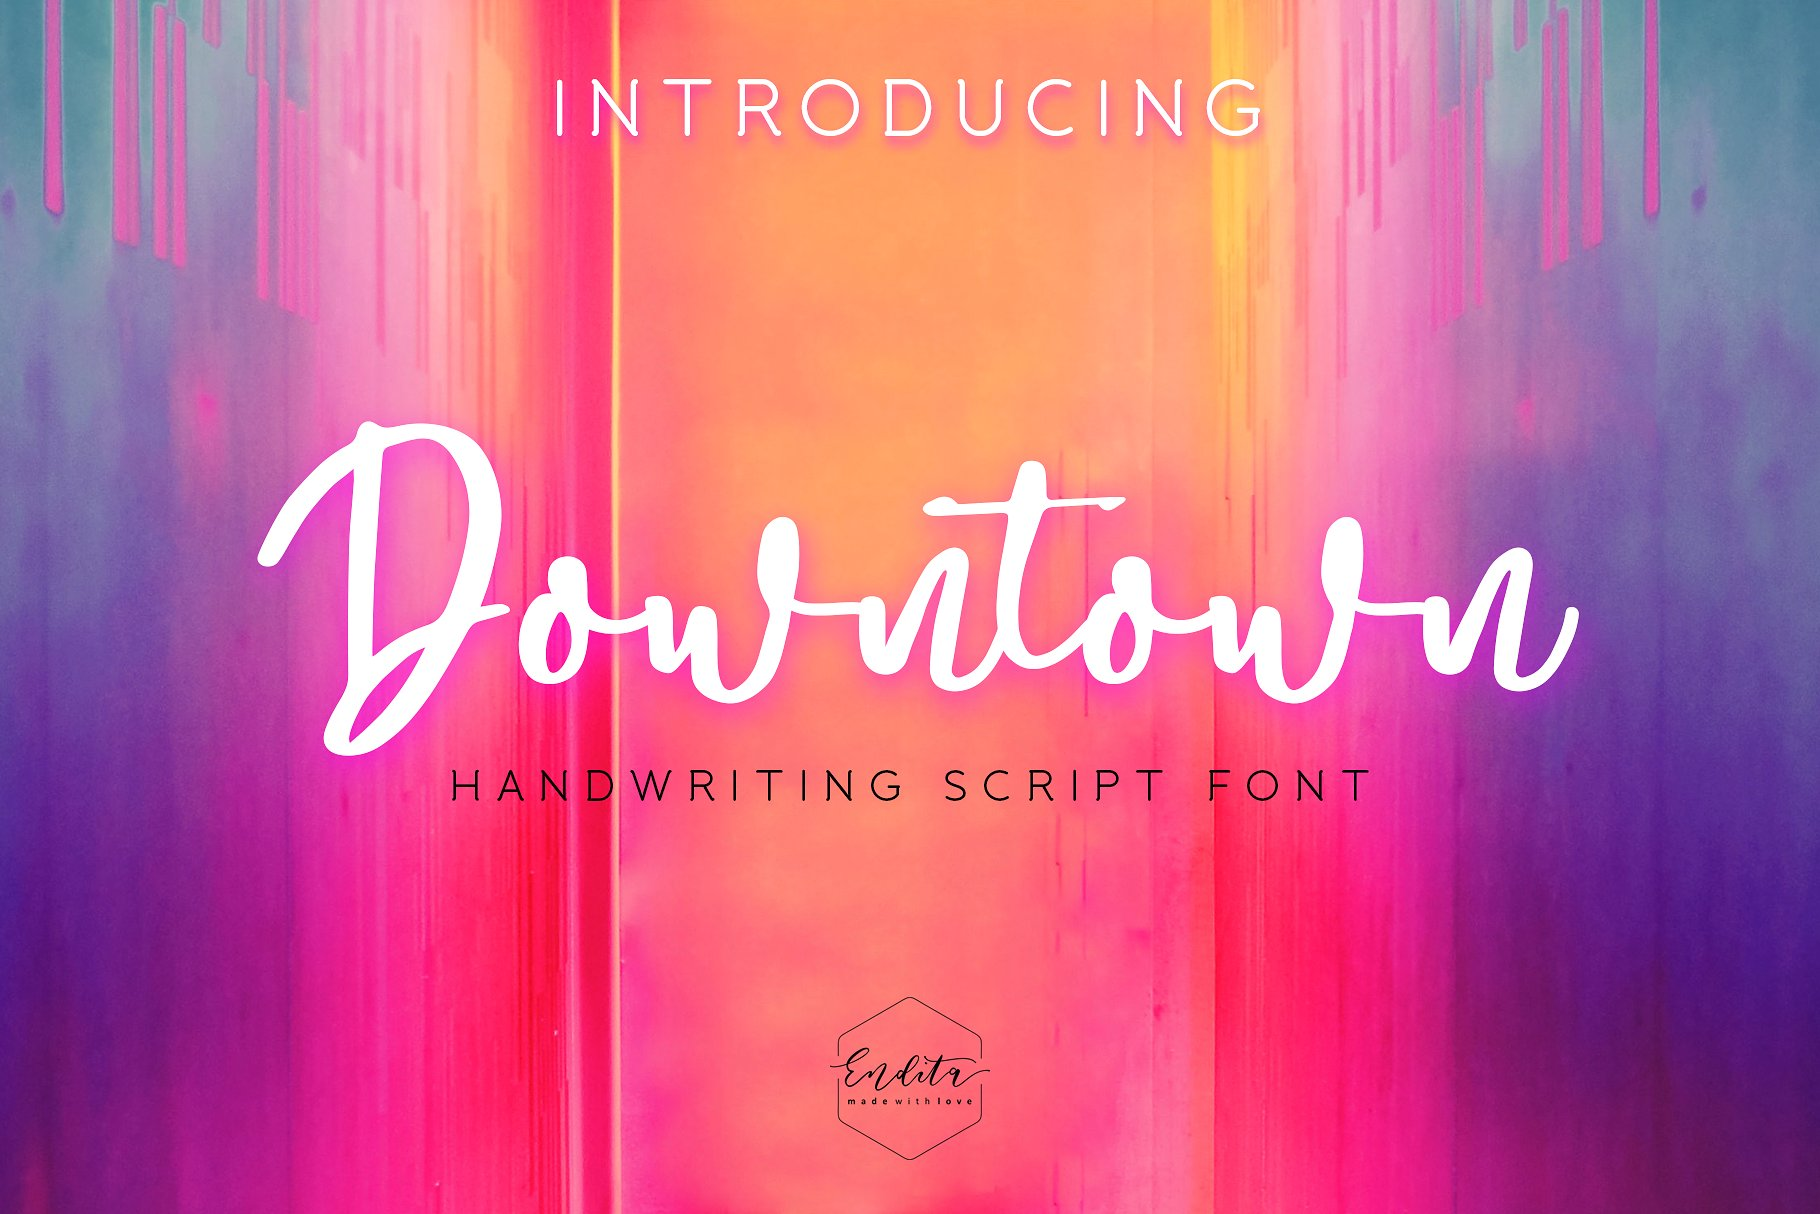 Downtown - Handwriting Script Font example image 1